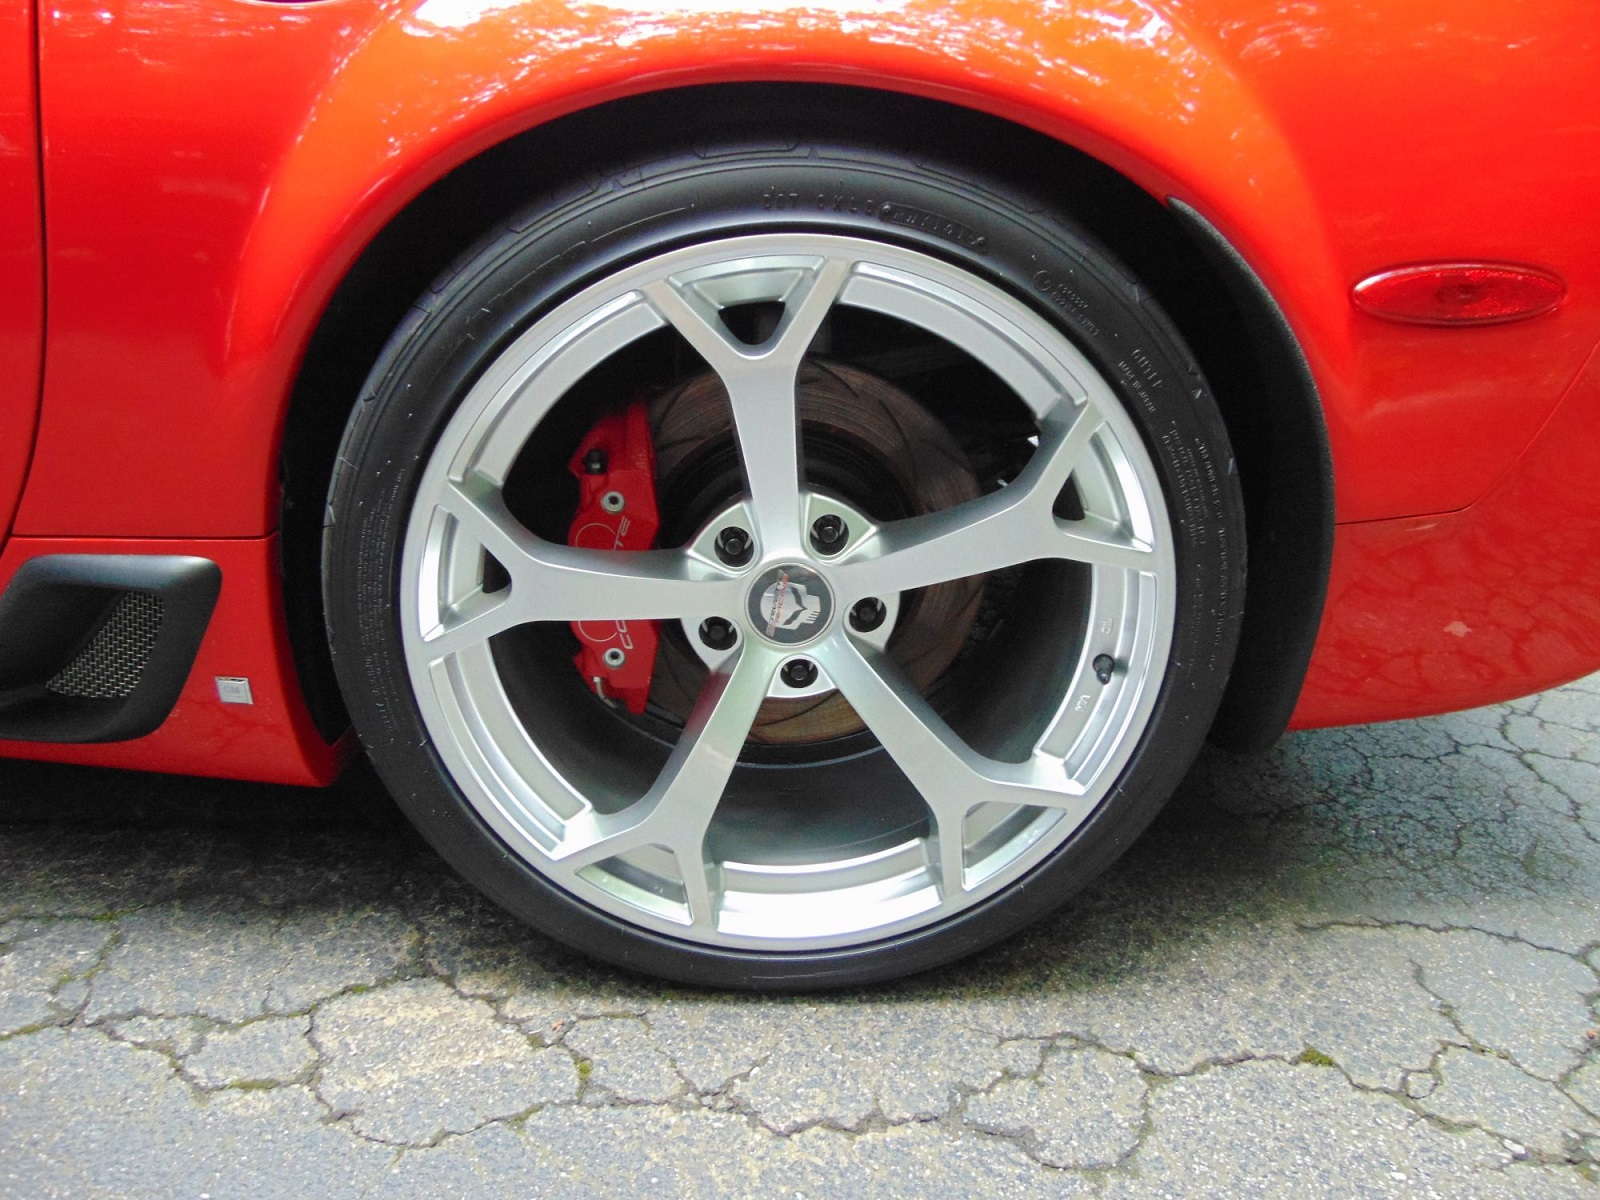 Casters And Wheels These Badass Wheels And Tires Can Be On Your Corvette